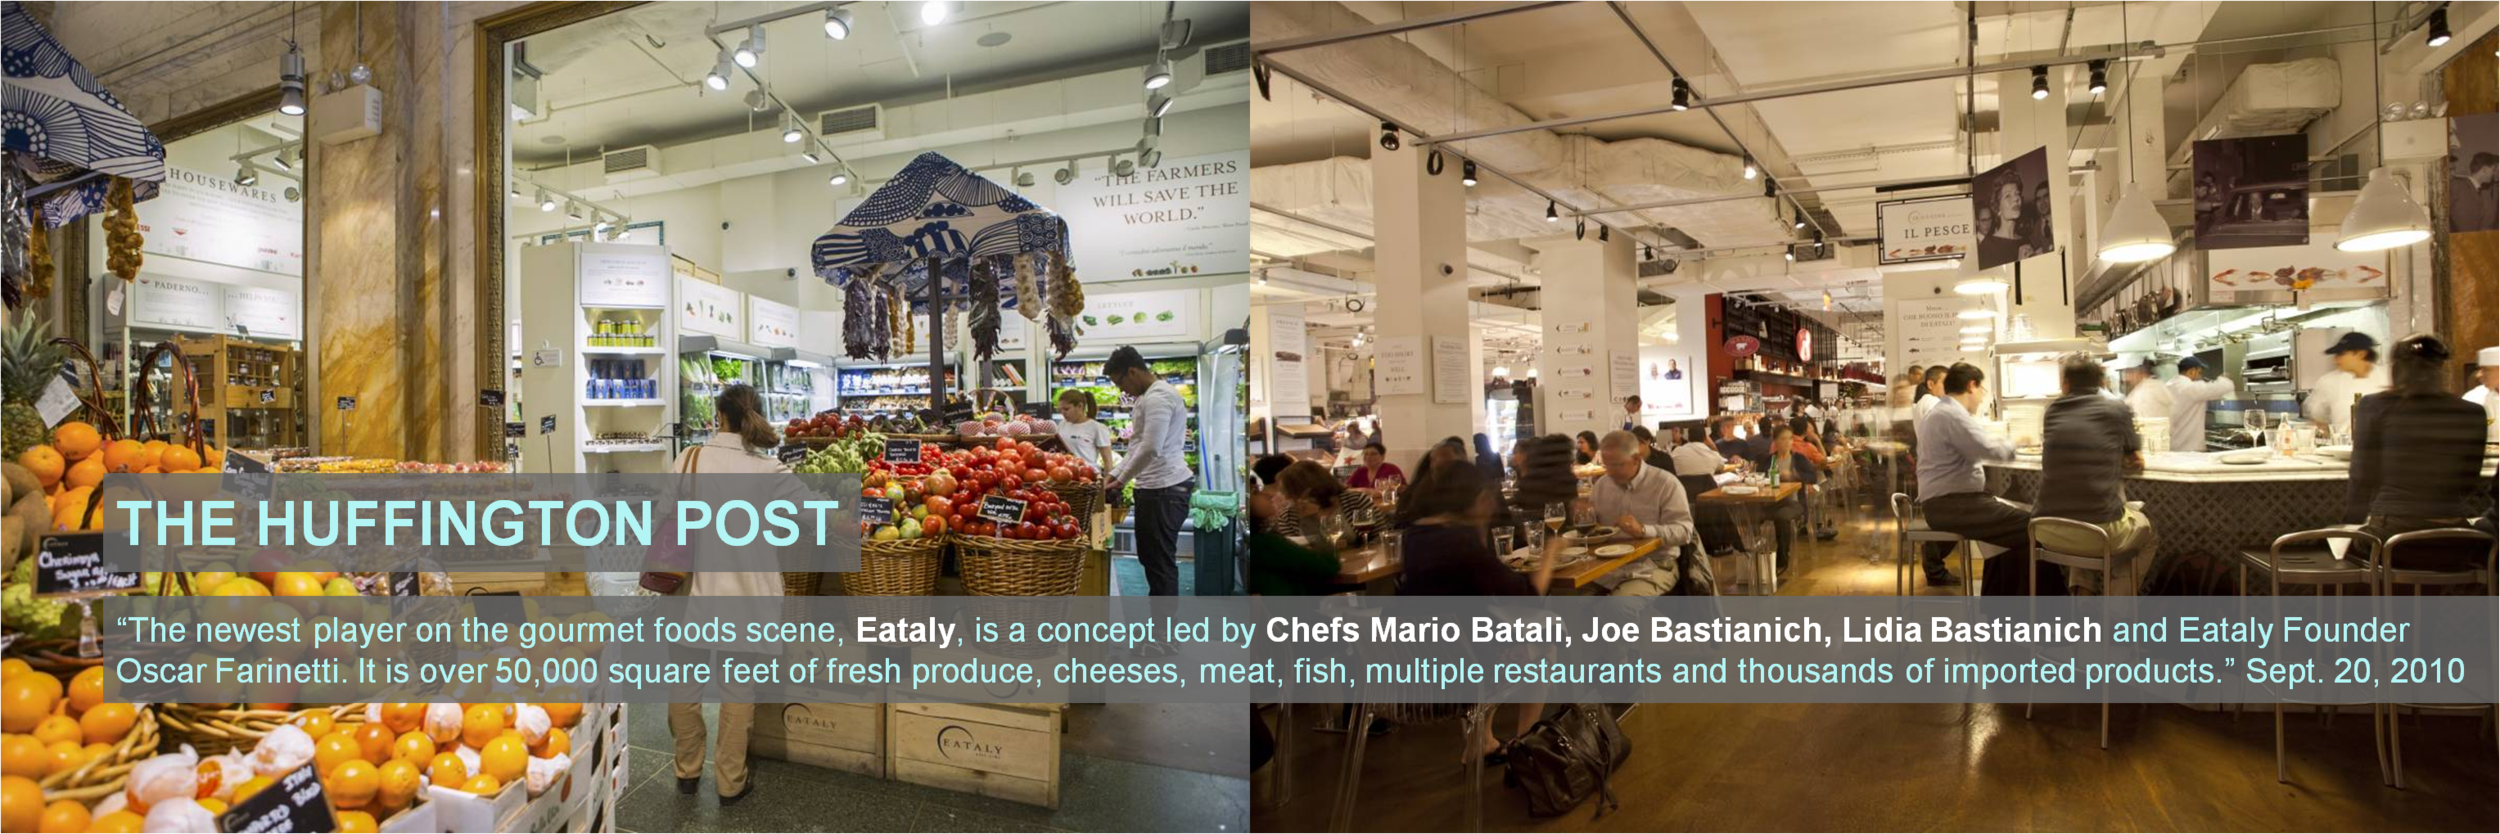 Huffington Post Sept 2010 Eataly Flatiron.png